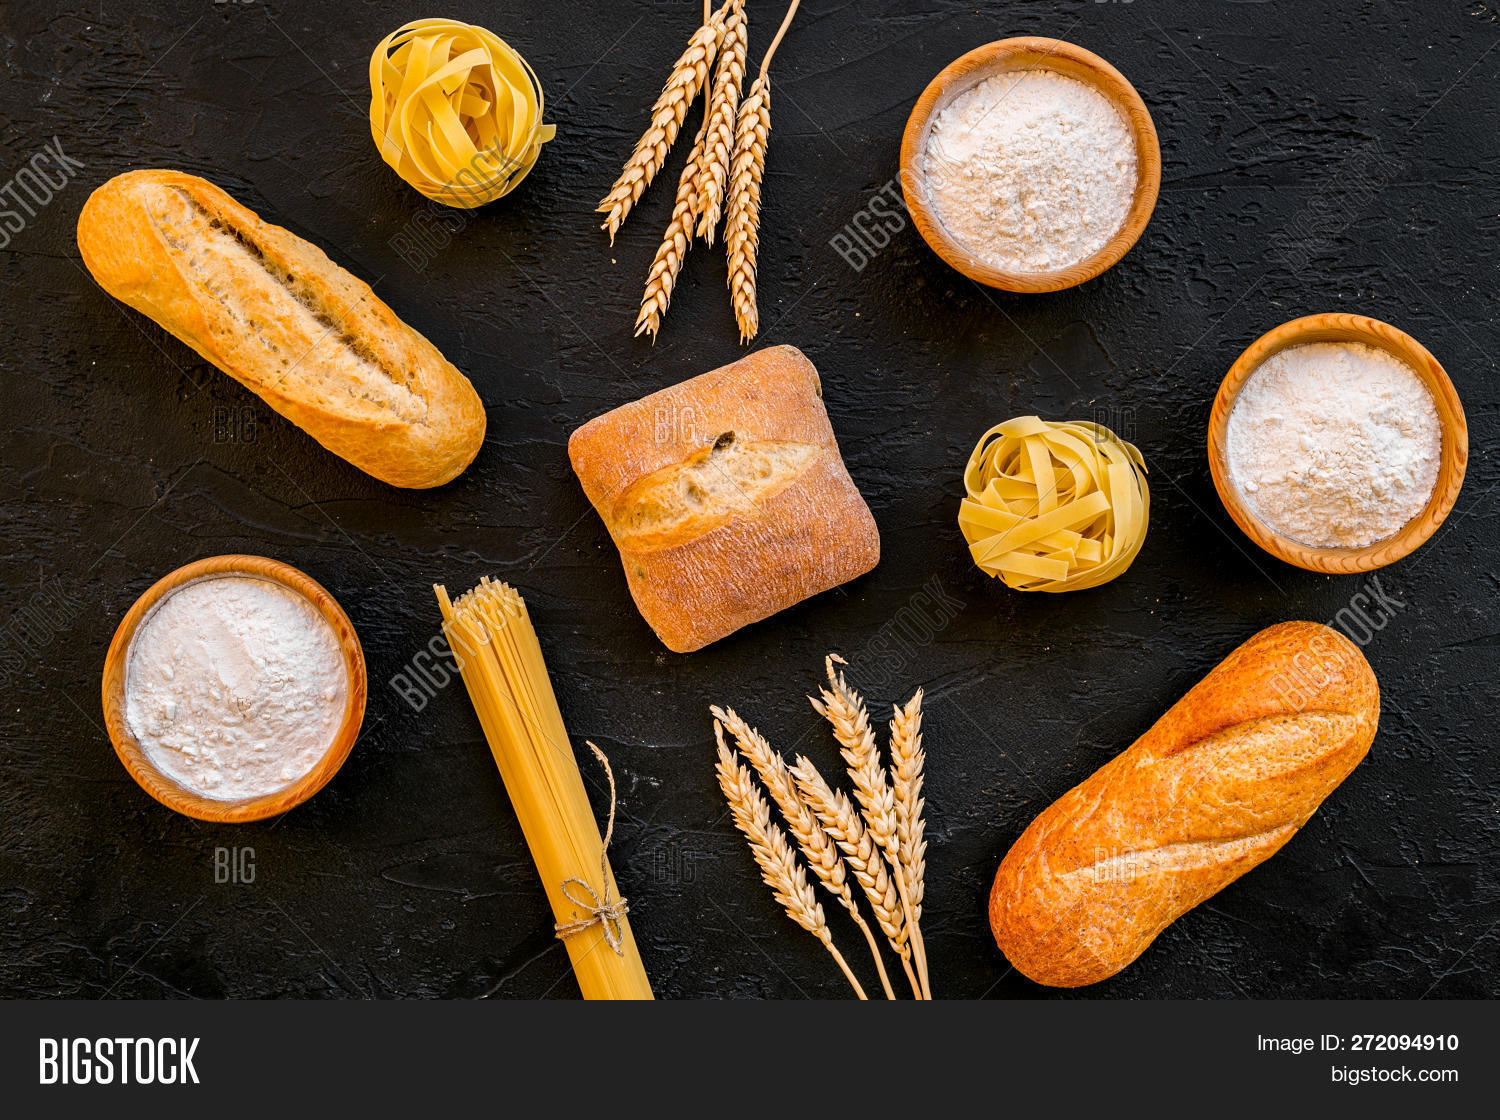 Products Made Wheat Image & Photo (Free Trial) | Bigstock